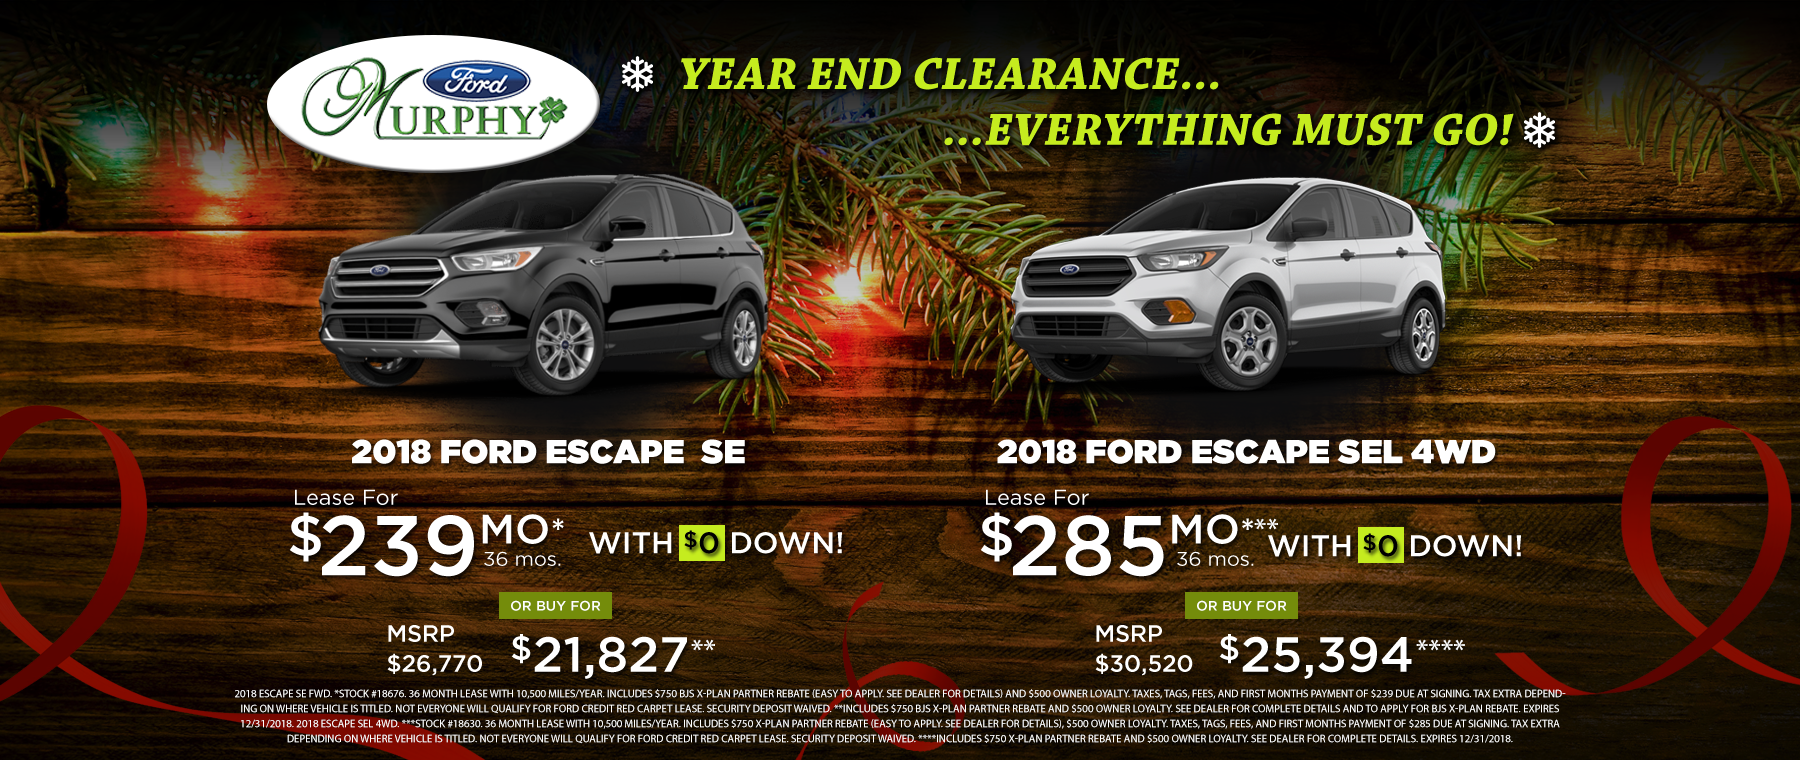 2018 Ford Escape December Lease Offer